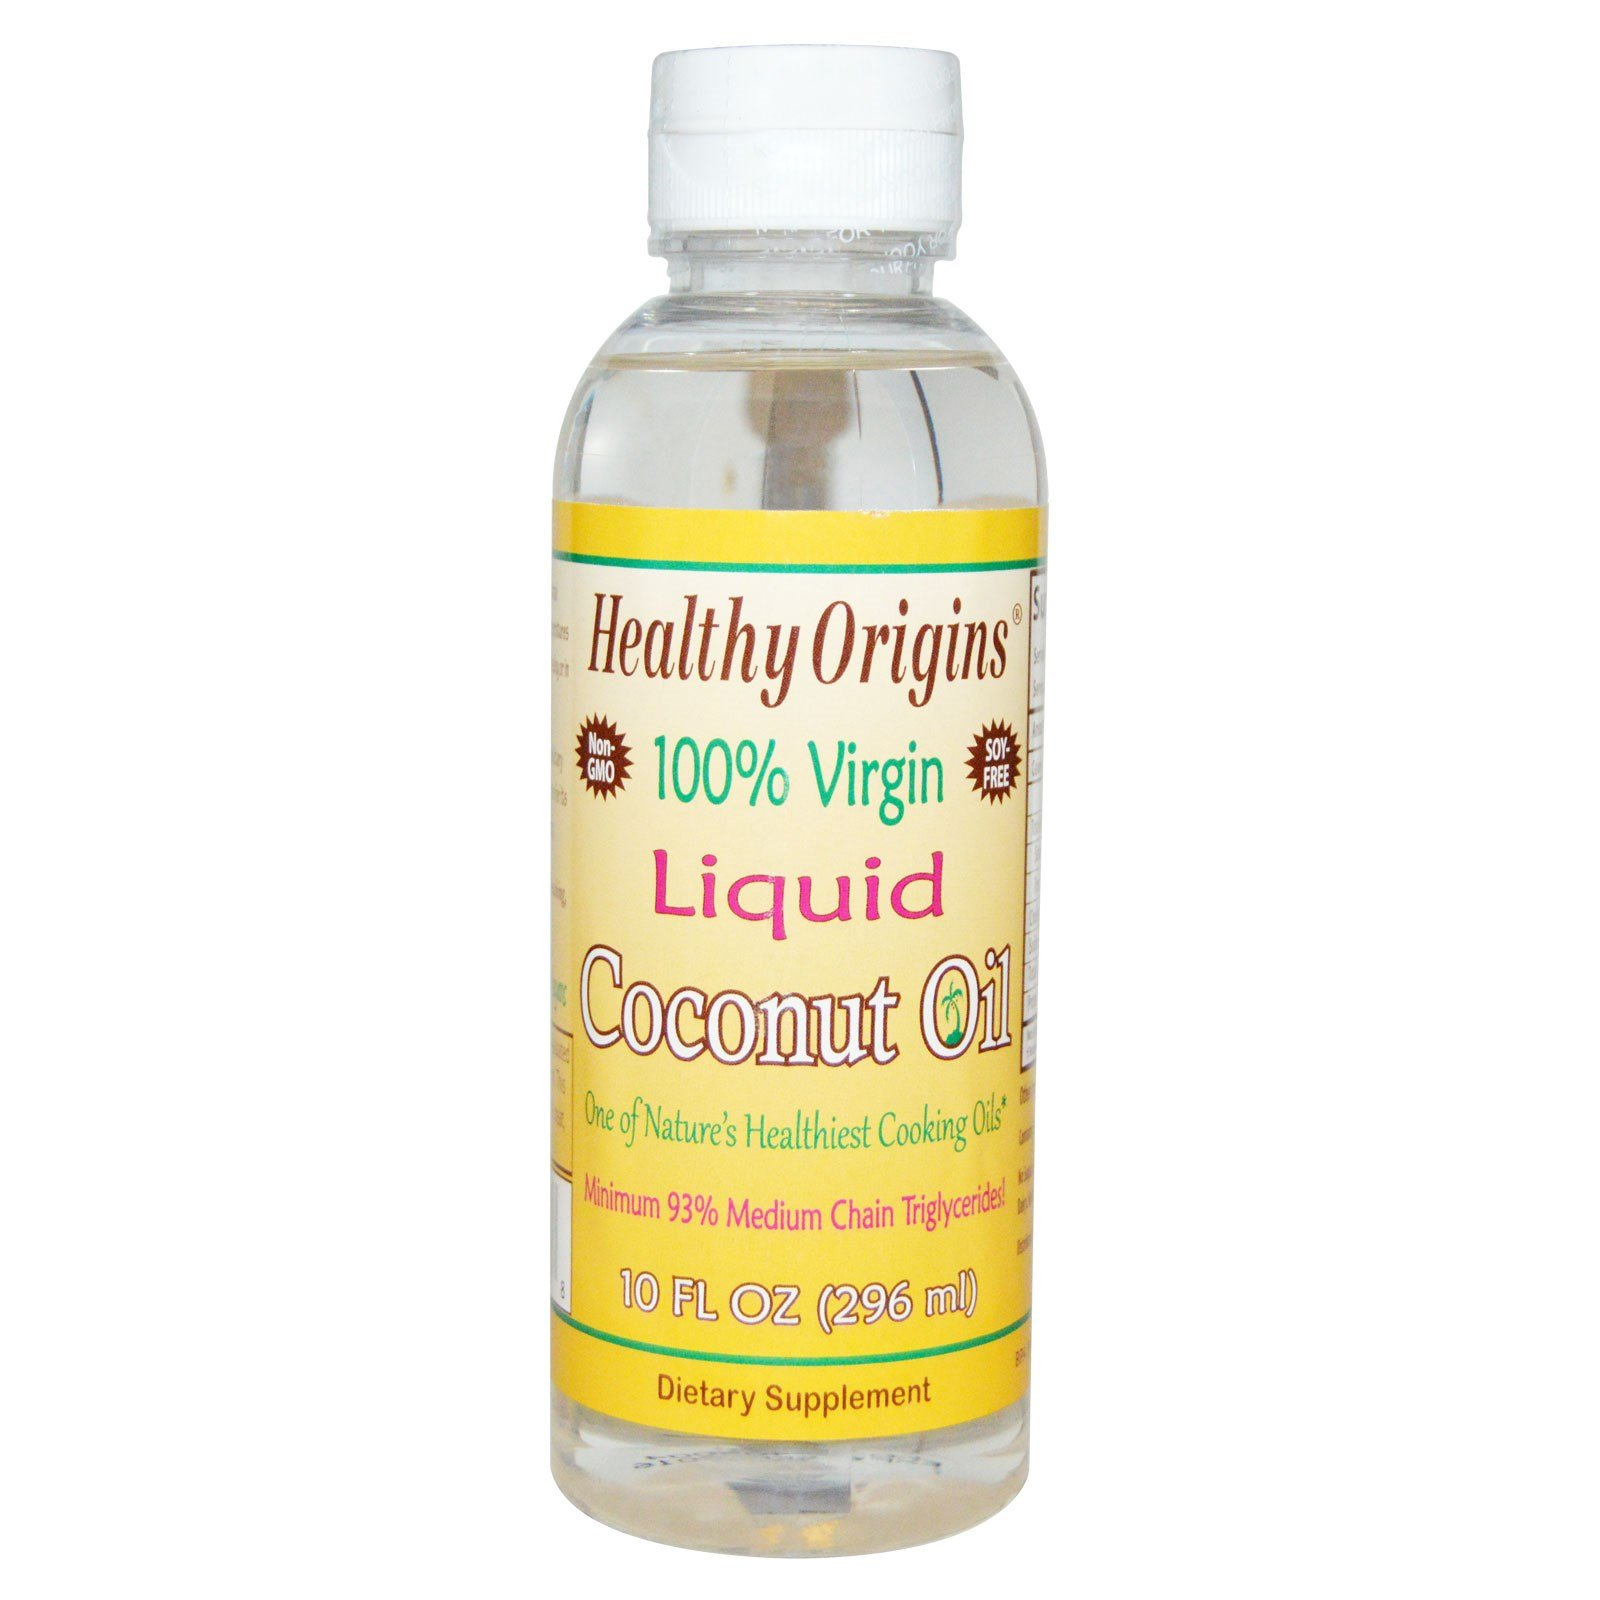 Healthy Origins, 100% Virgin Liquid Coconut Oil, 10 fl oz (296 ml) Healthy Origins, 100% Virgin Liquid Coconut Oil, 10 fl oz (296 ml) - 2pcs by Healthy Origins